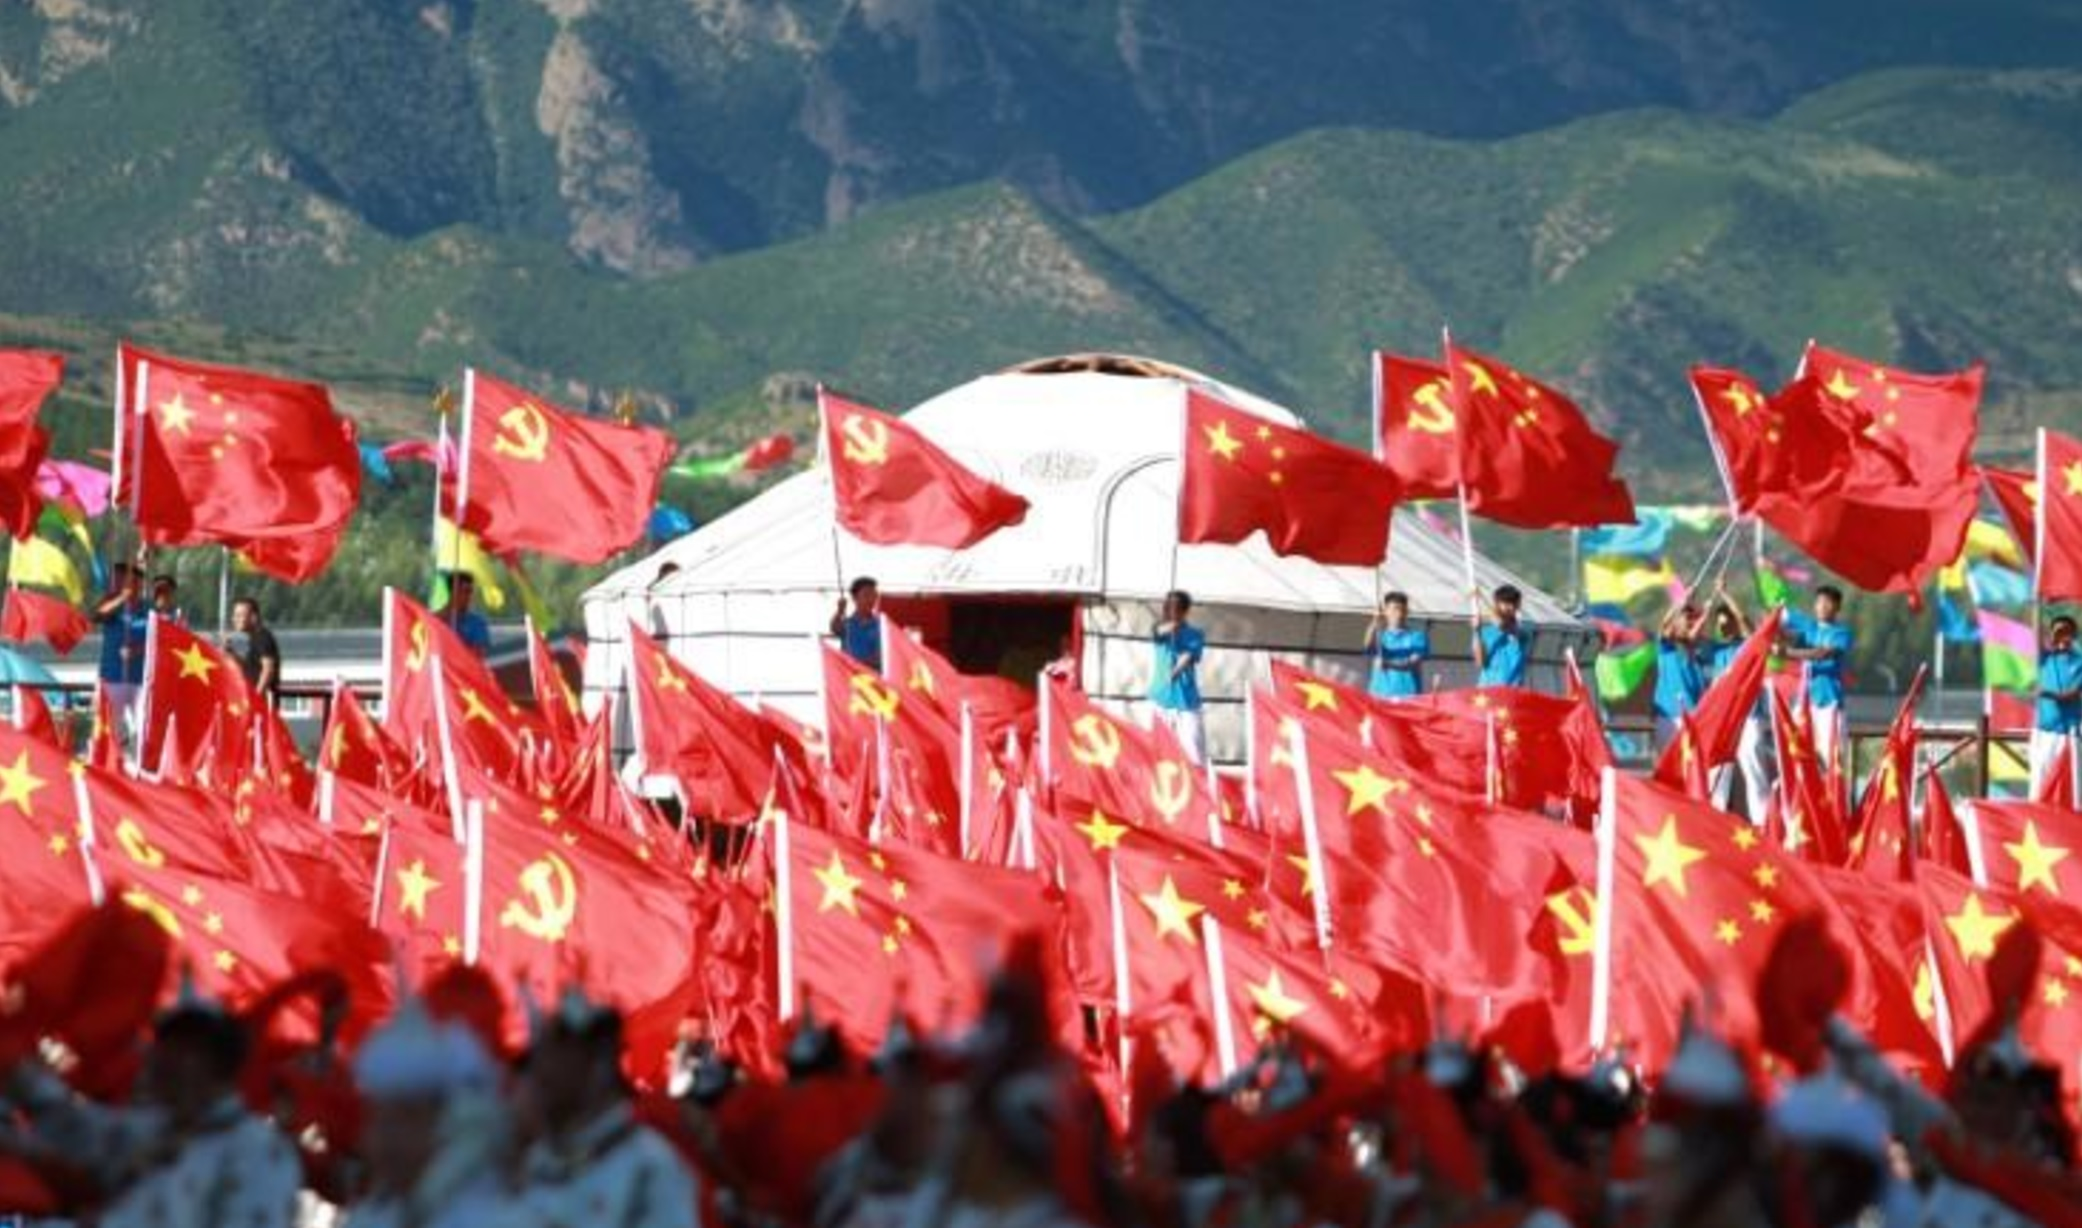 Mongolian Warriors and Communist Soldiers: A Frontier Town in China